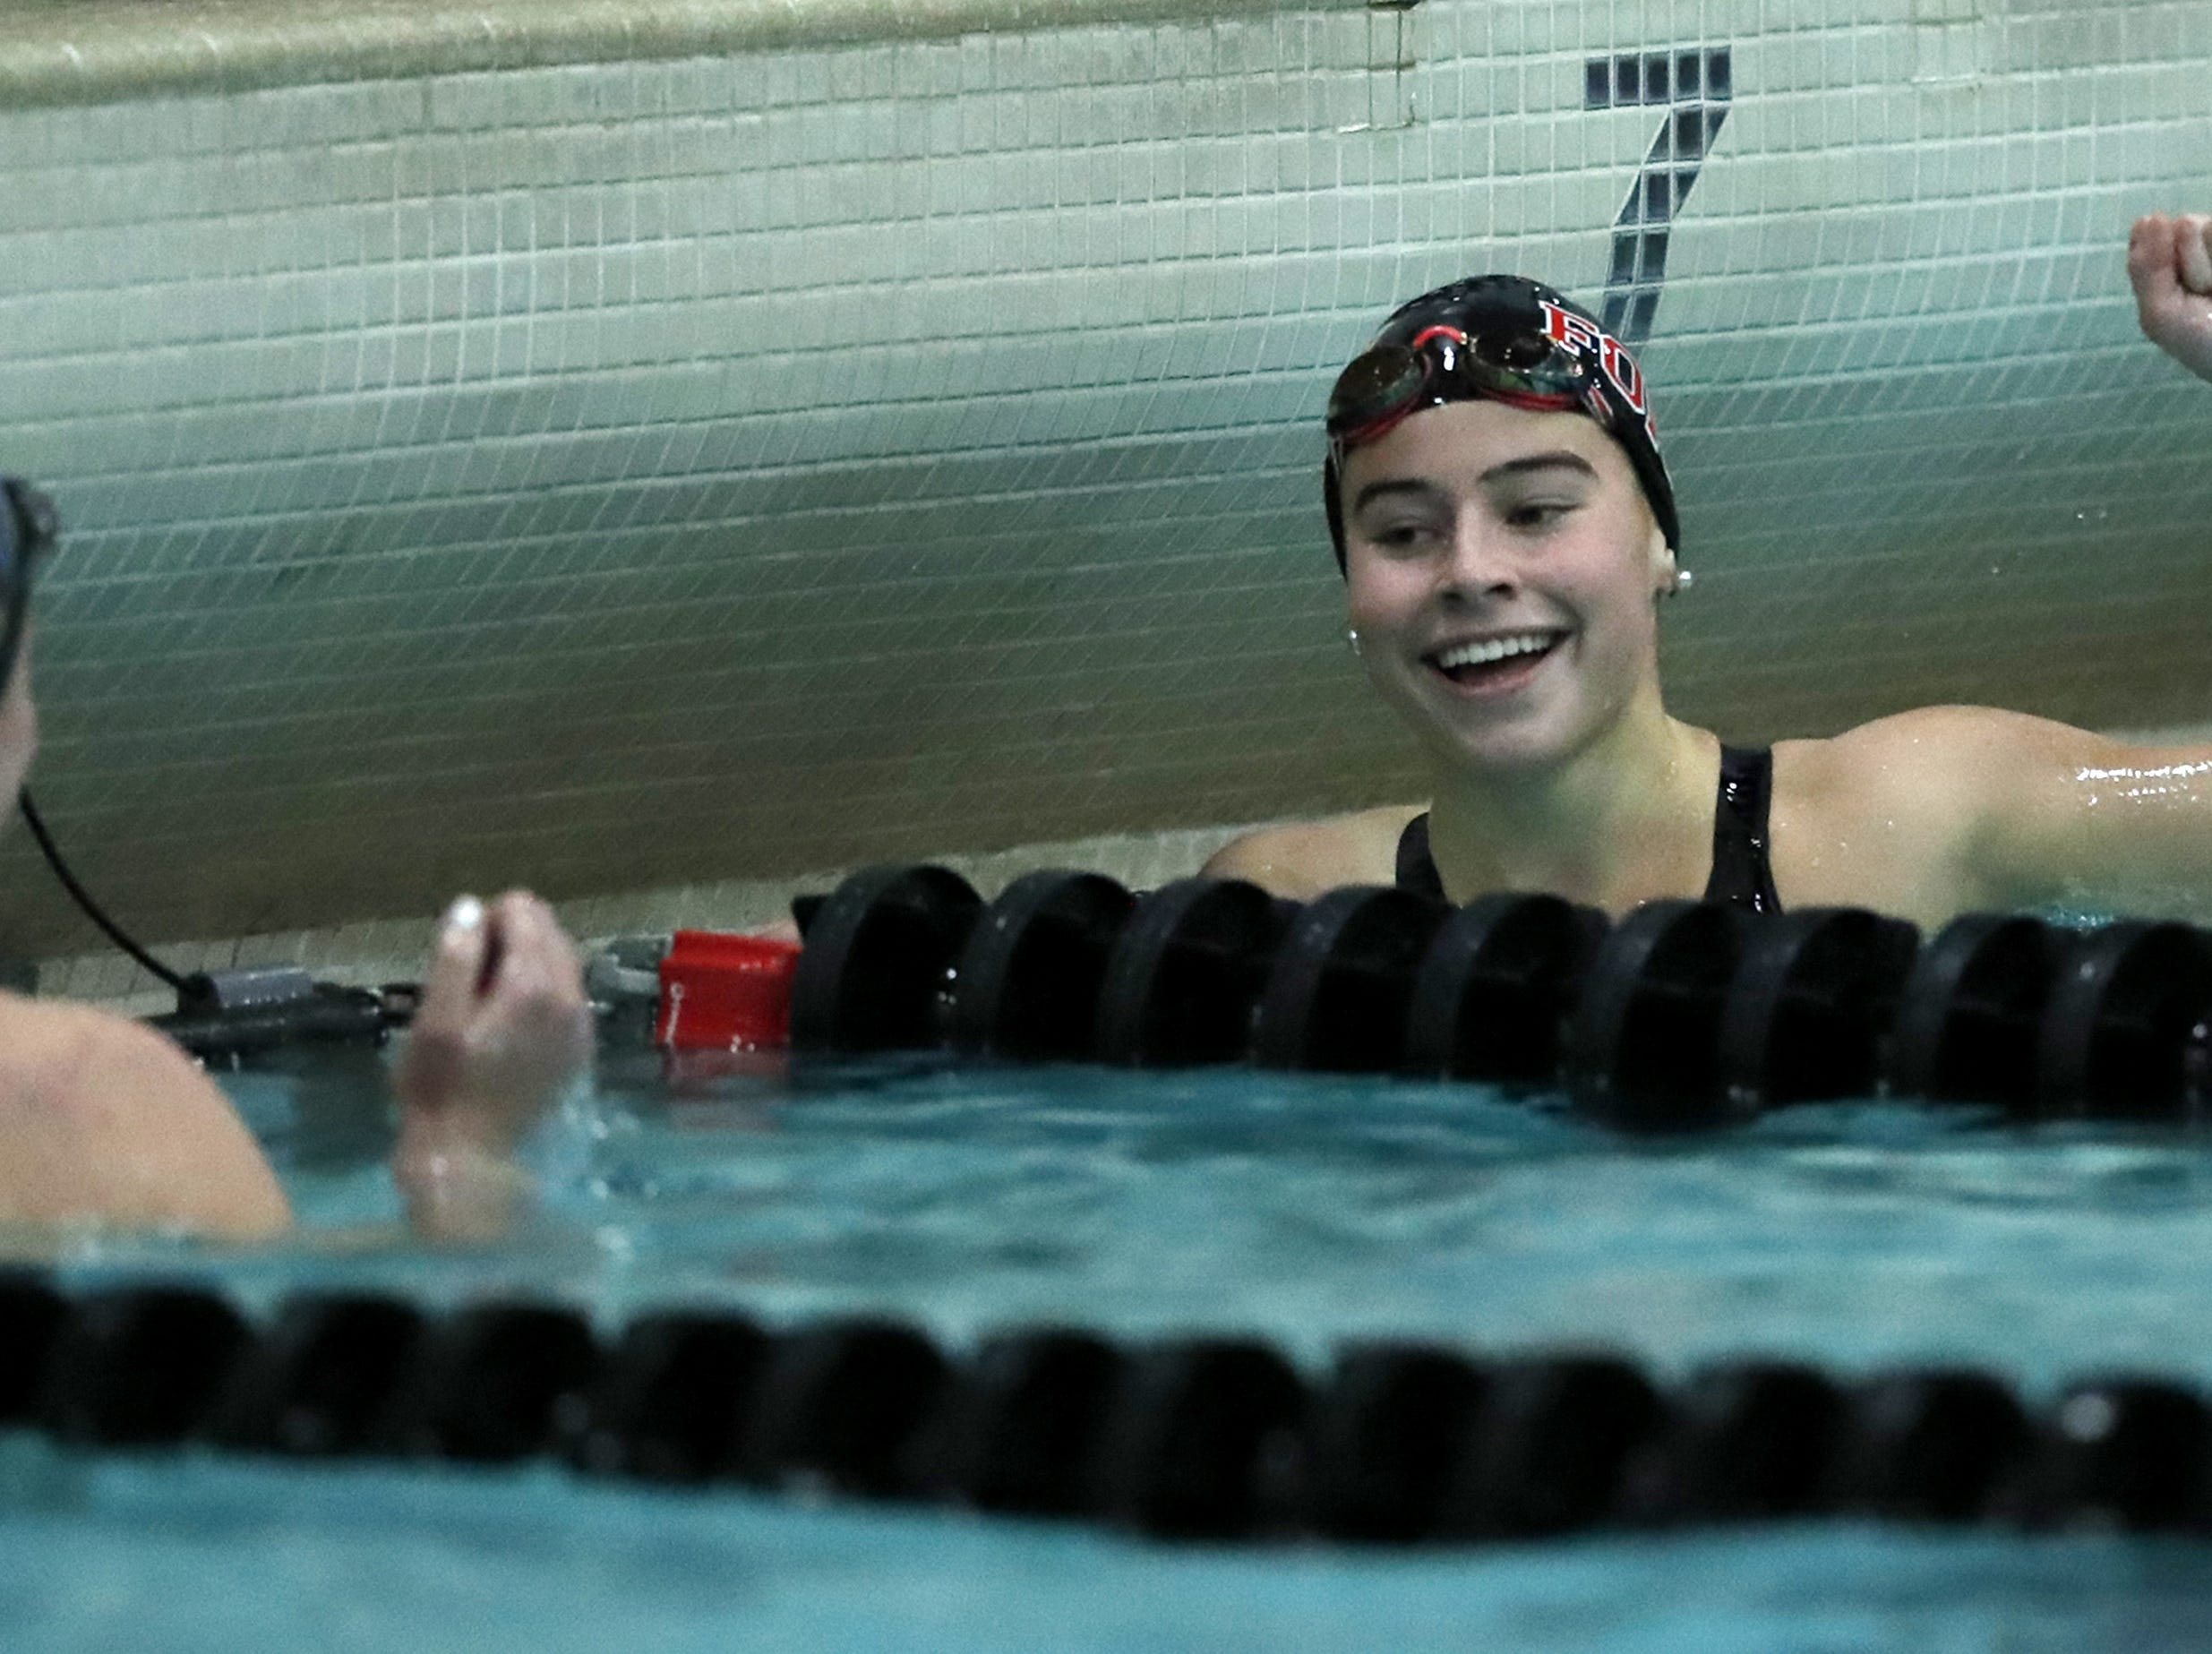 Fond du LacÕs Isabella Jones reacts after finishing the 200 yard freestyle during the WIAA Division 1 State Swimming and Diving meet Saturday, Nov. 10, 2018, at the UW Natatorium in Madison, Wis. Danny Damiani/USA TODAY NETWORK-Wisconsin